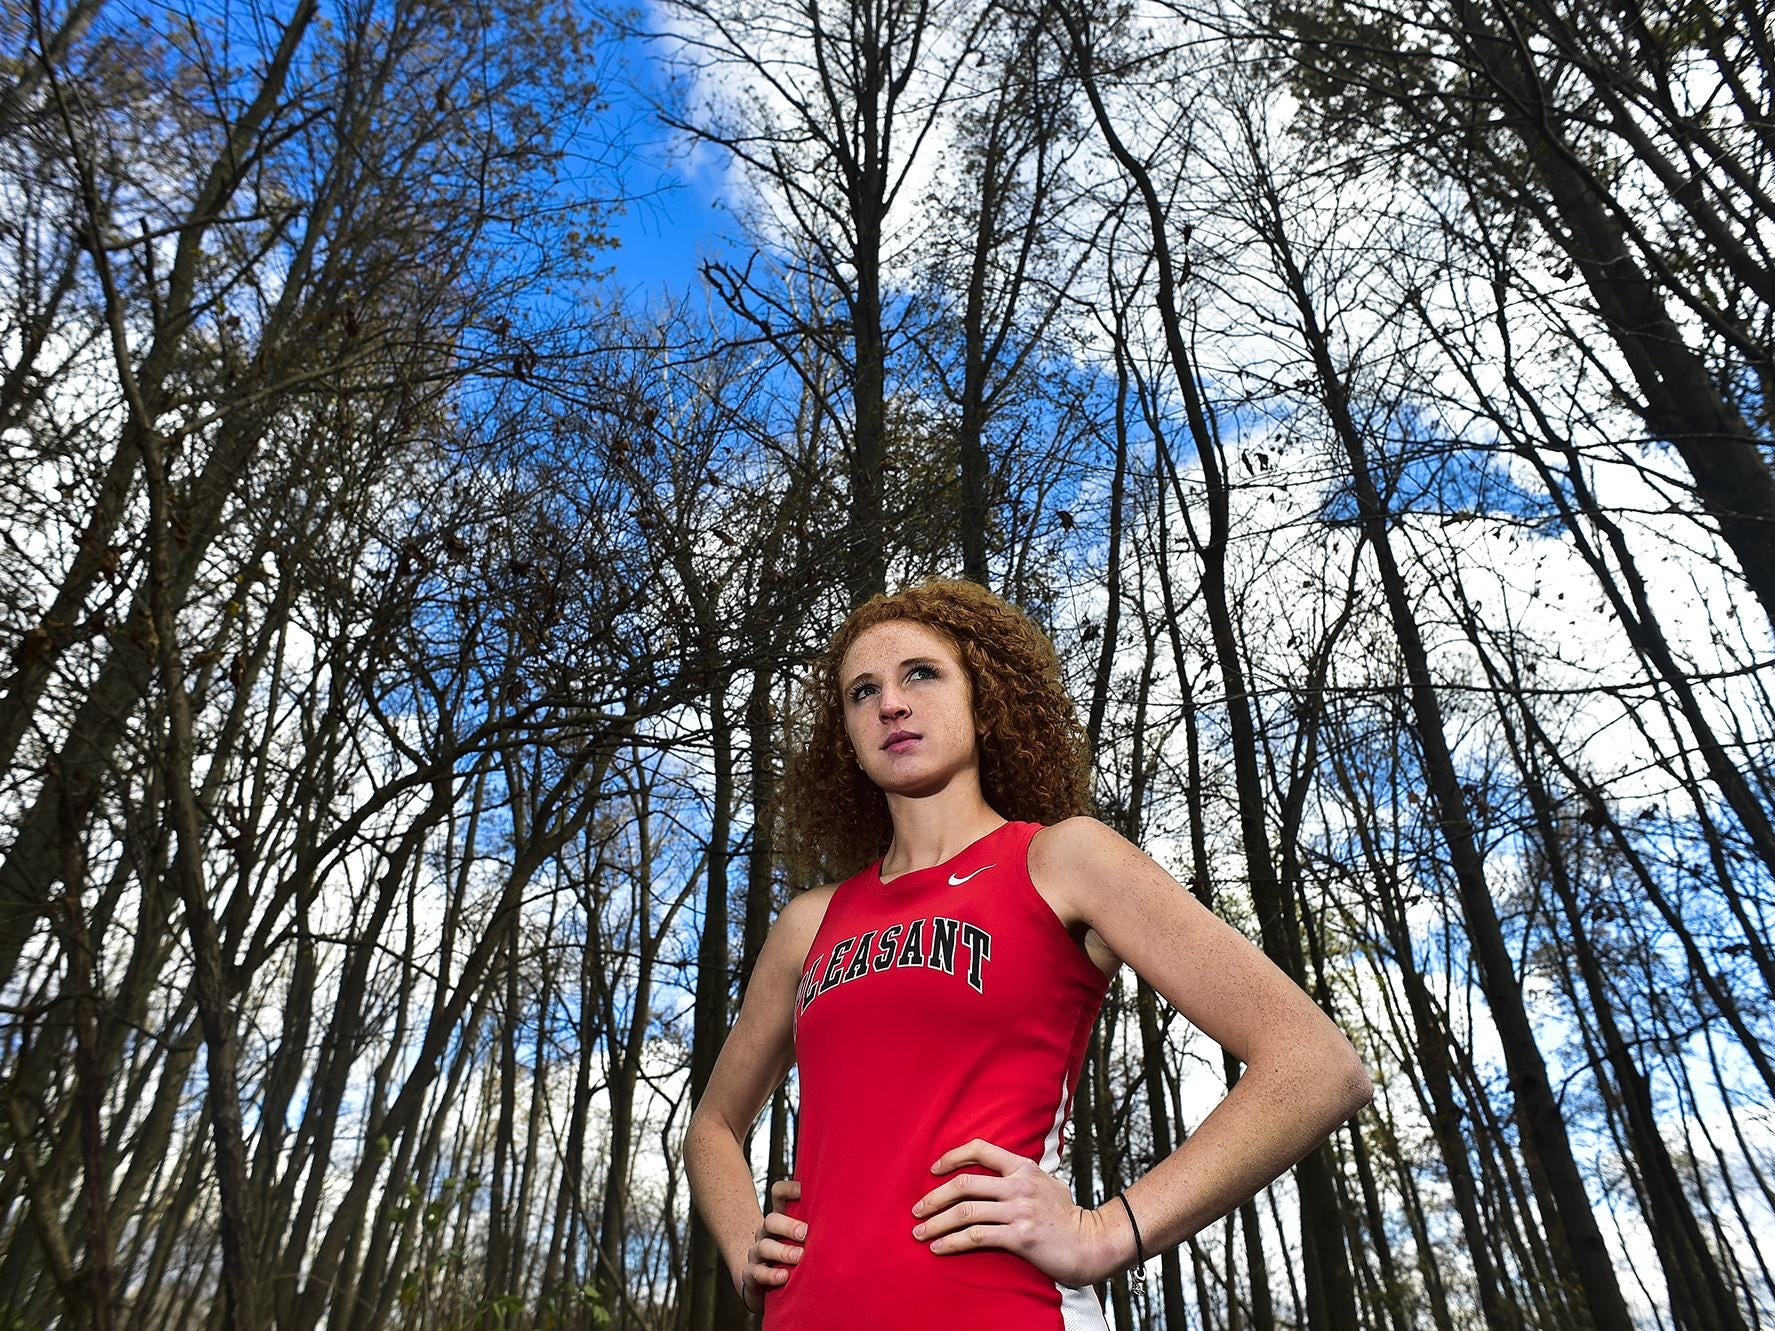 Female athlete of the month Hanah Peltier from Pleasant High School poses for a portrait on the Pleasant campus.